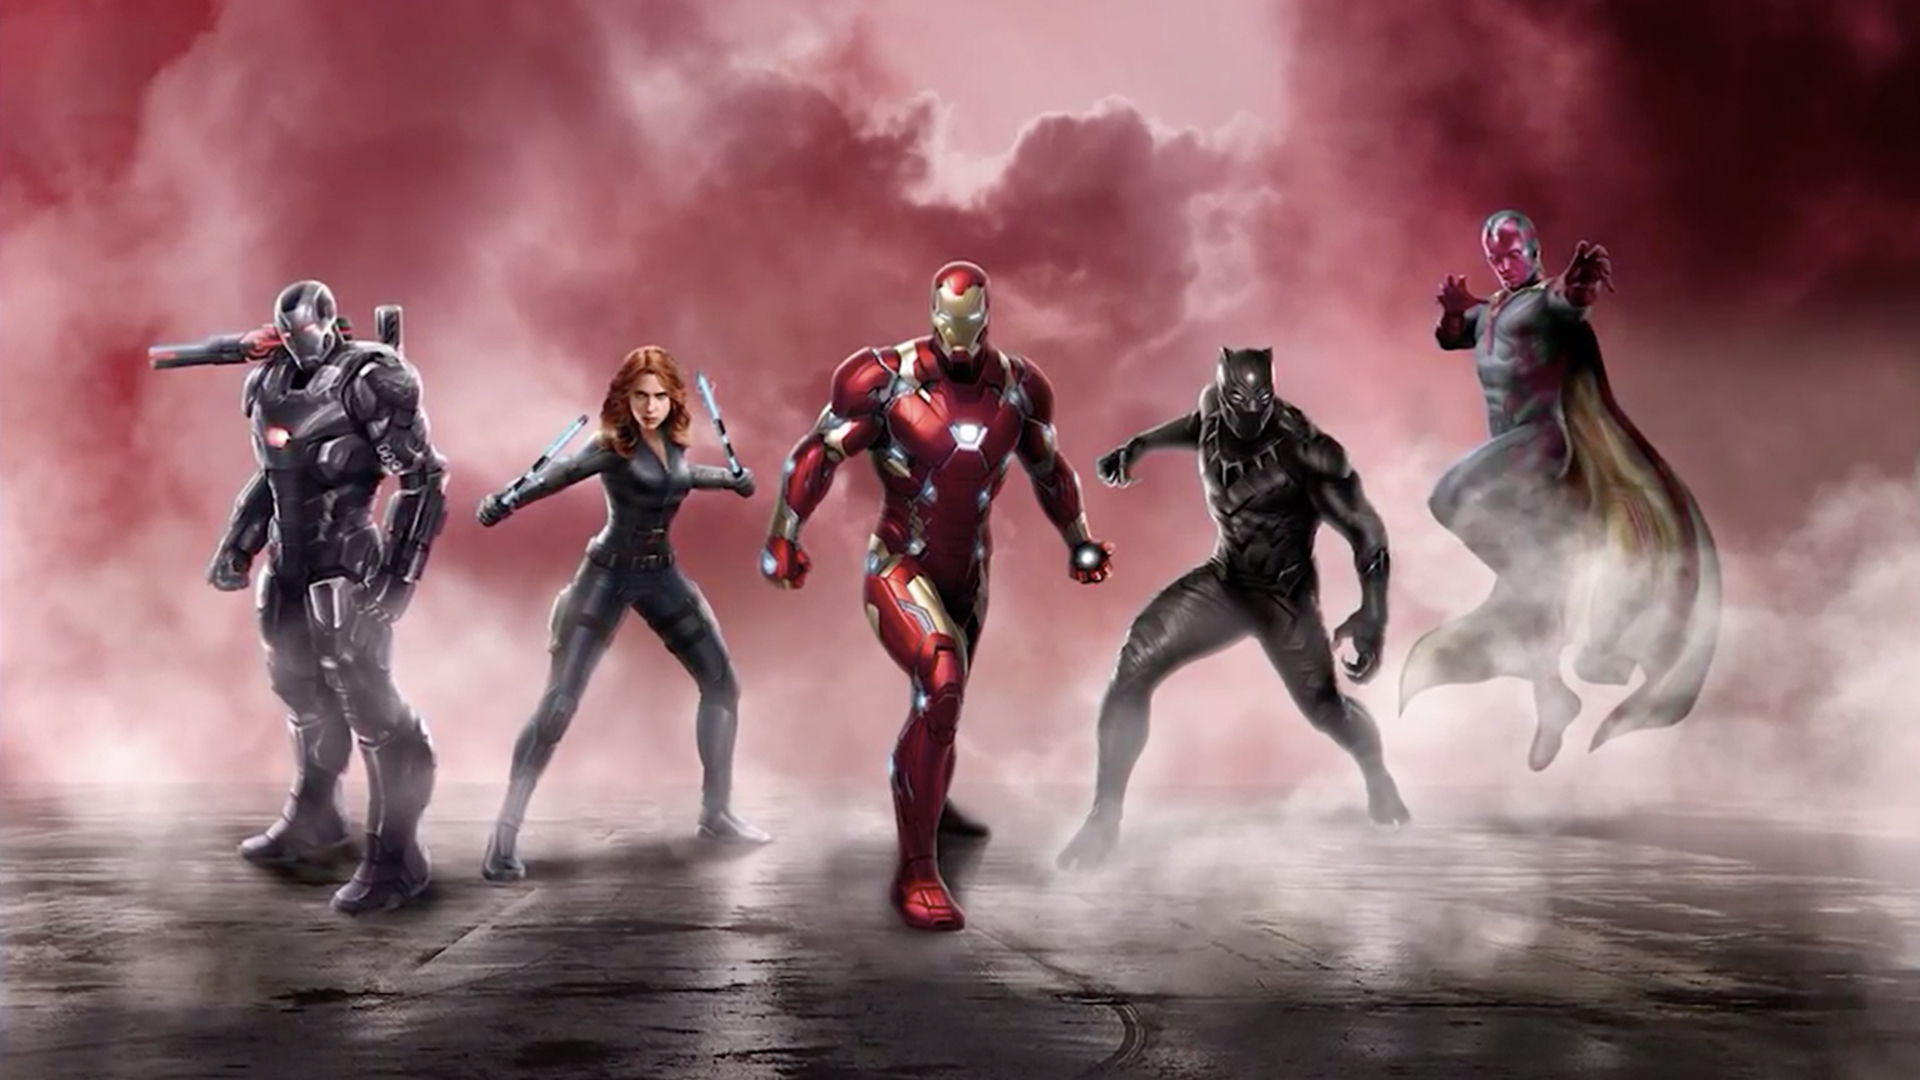 Captain America Civil War wallpapers High Resolution and Quality 1920x1080